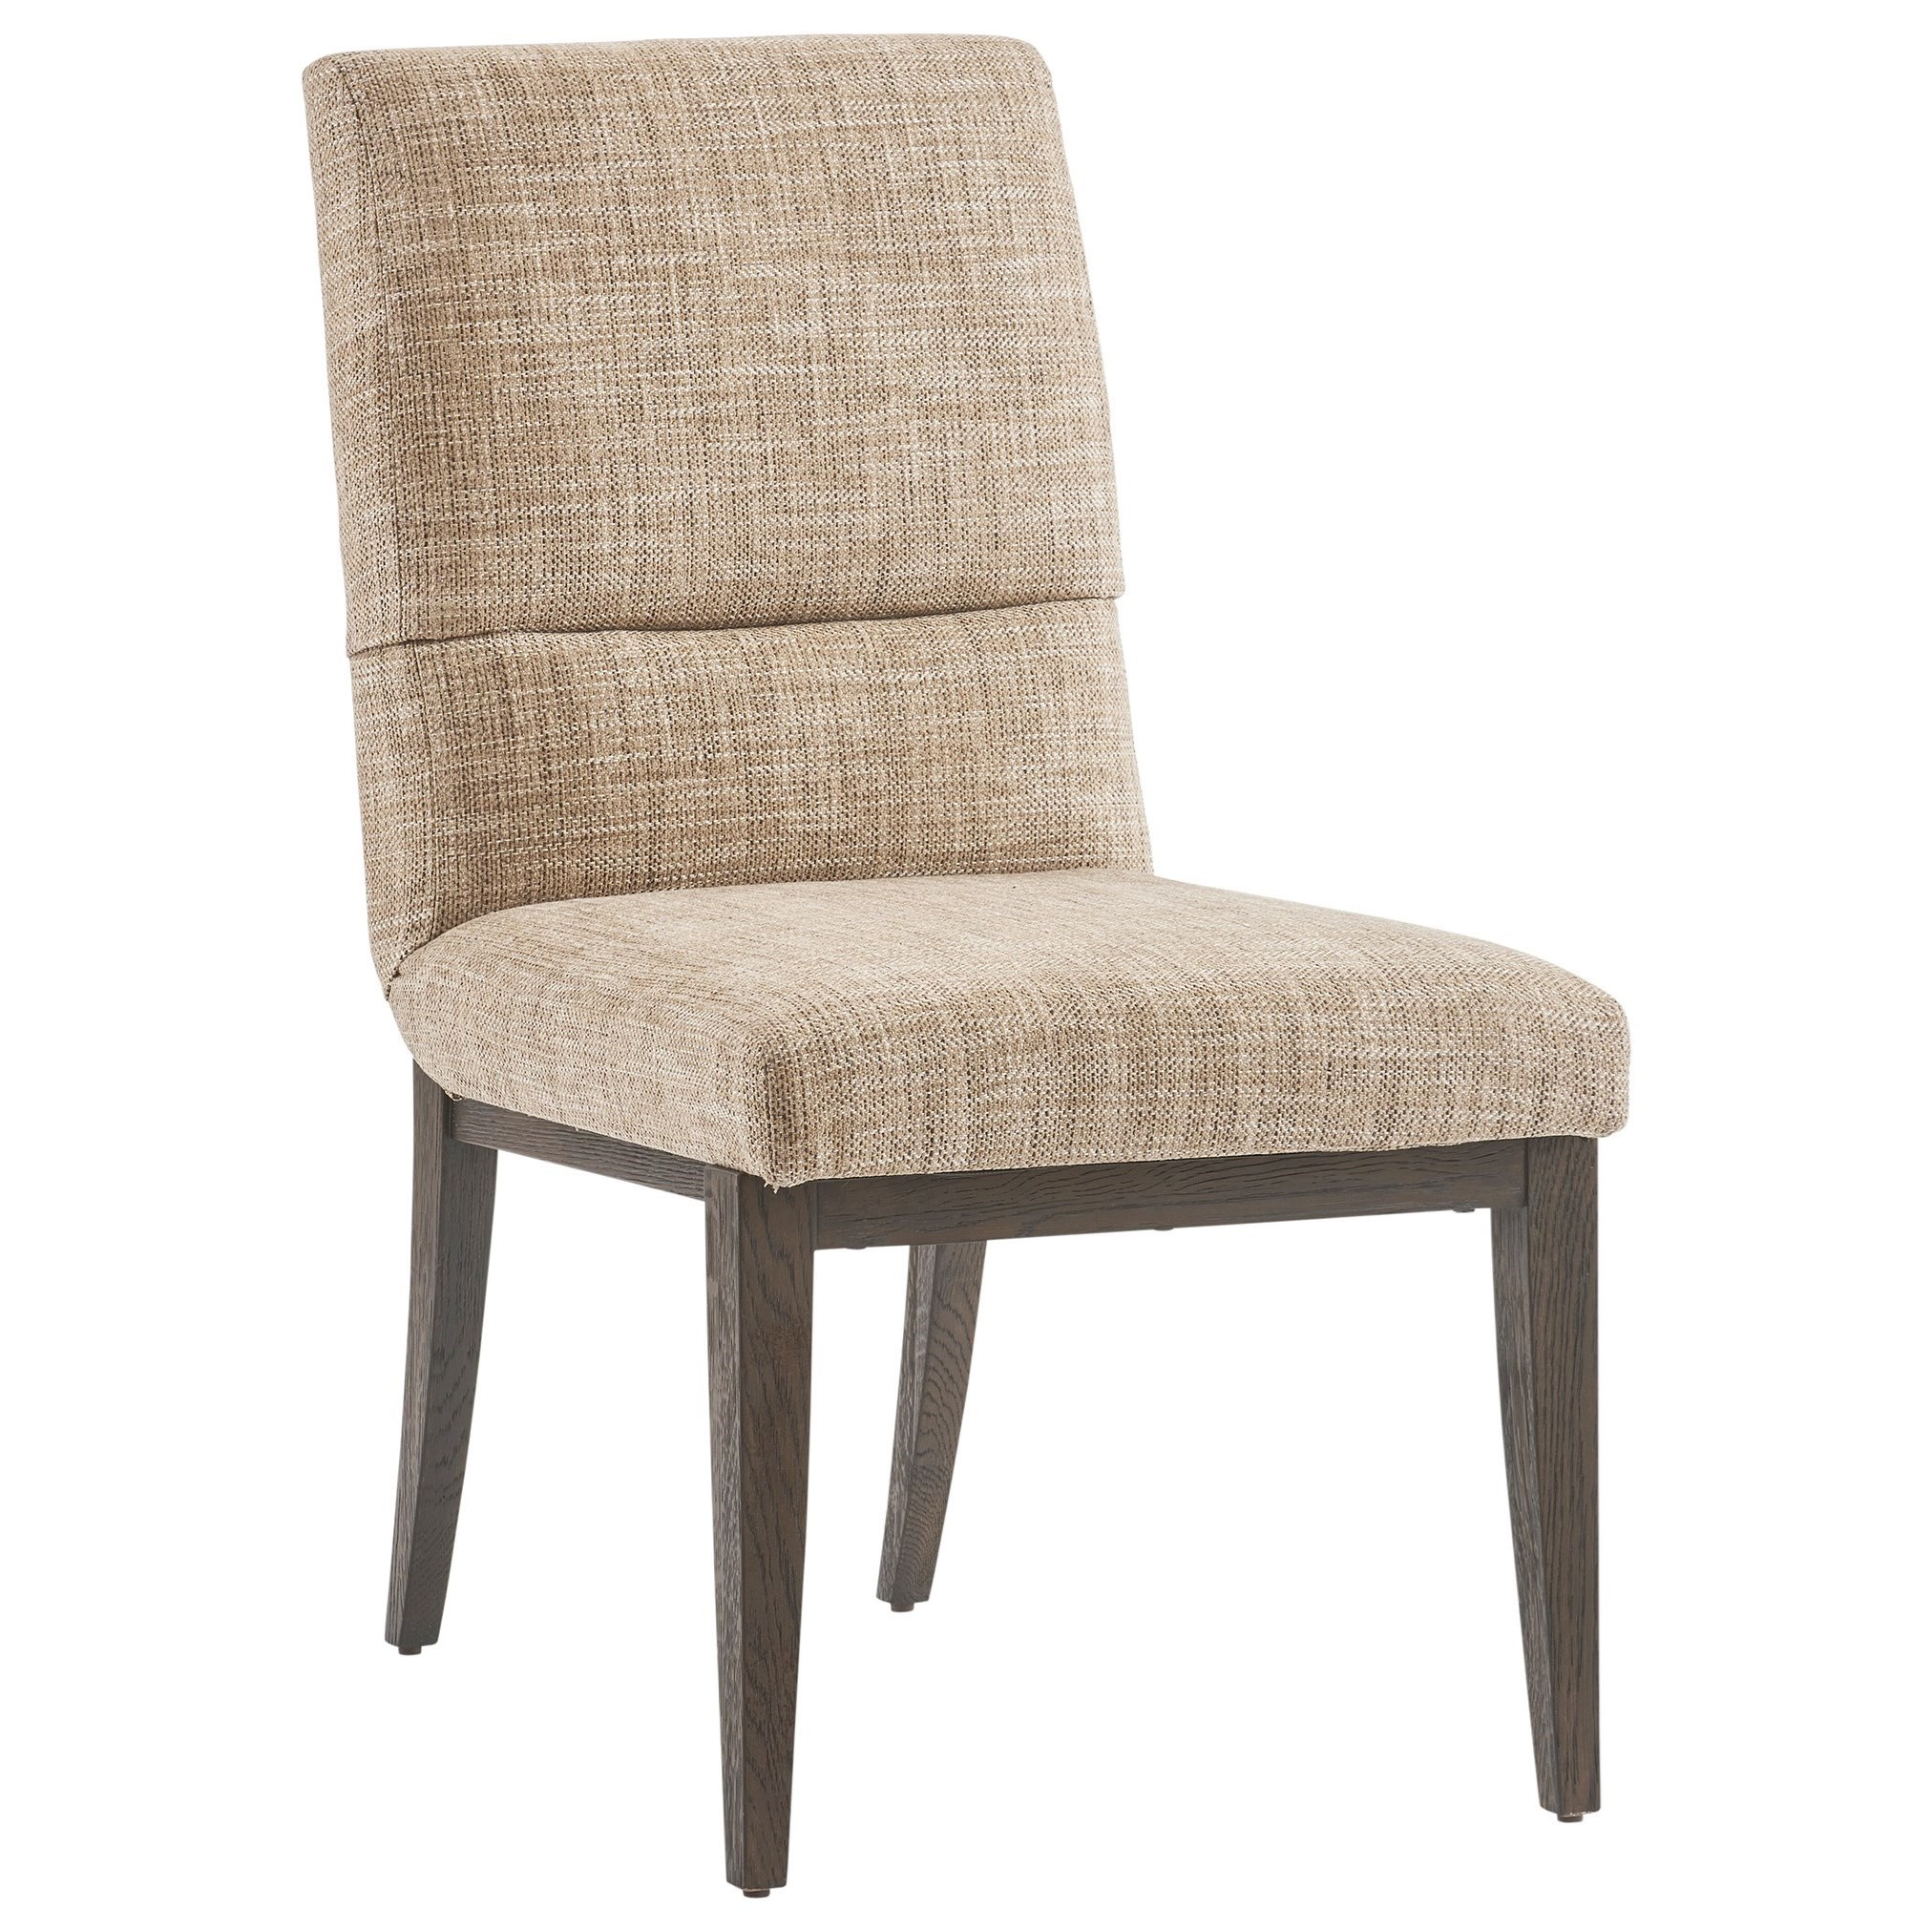 Park City Glenwild Upholstered Side Chair by Barclay Butera at Baer's Furniture